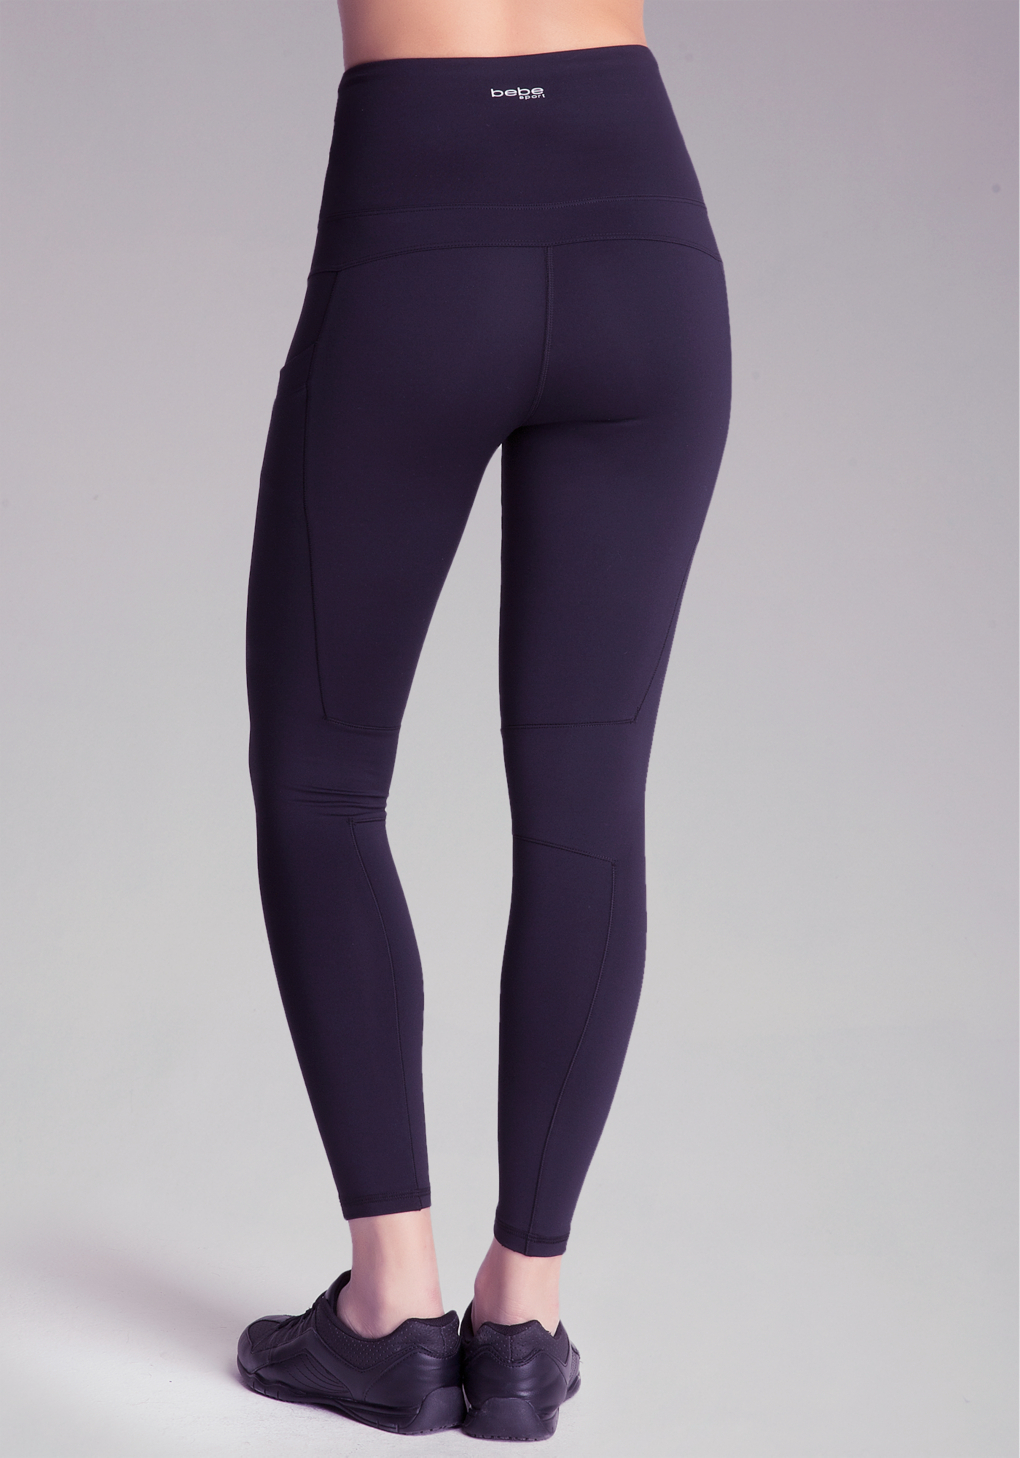 Bebe High-waist Workout Leggings in Black | Lyst